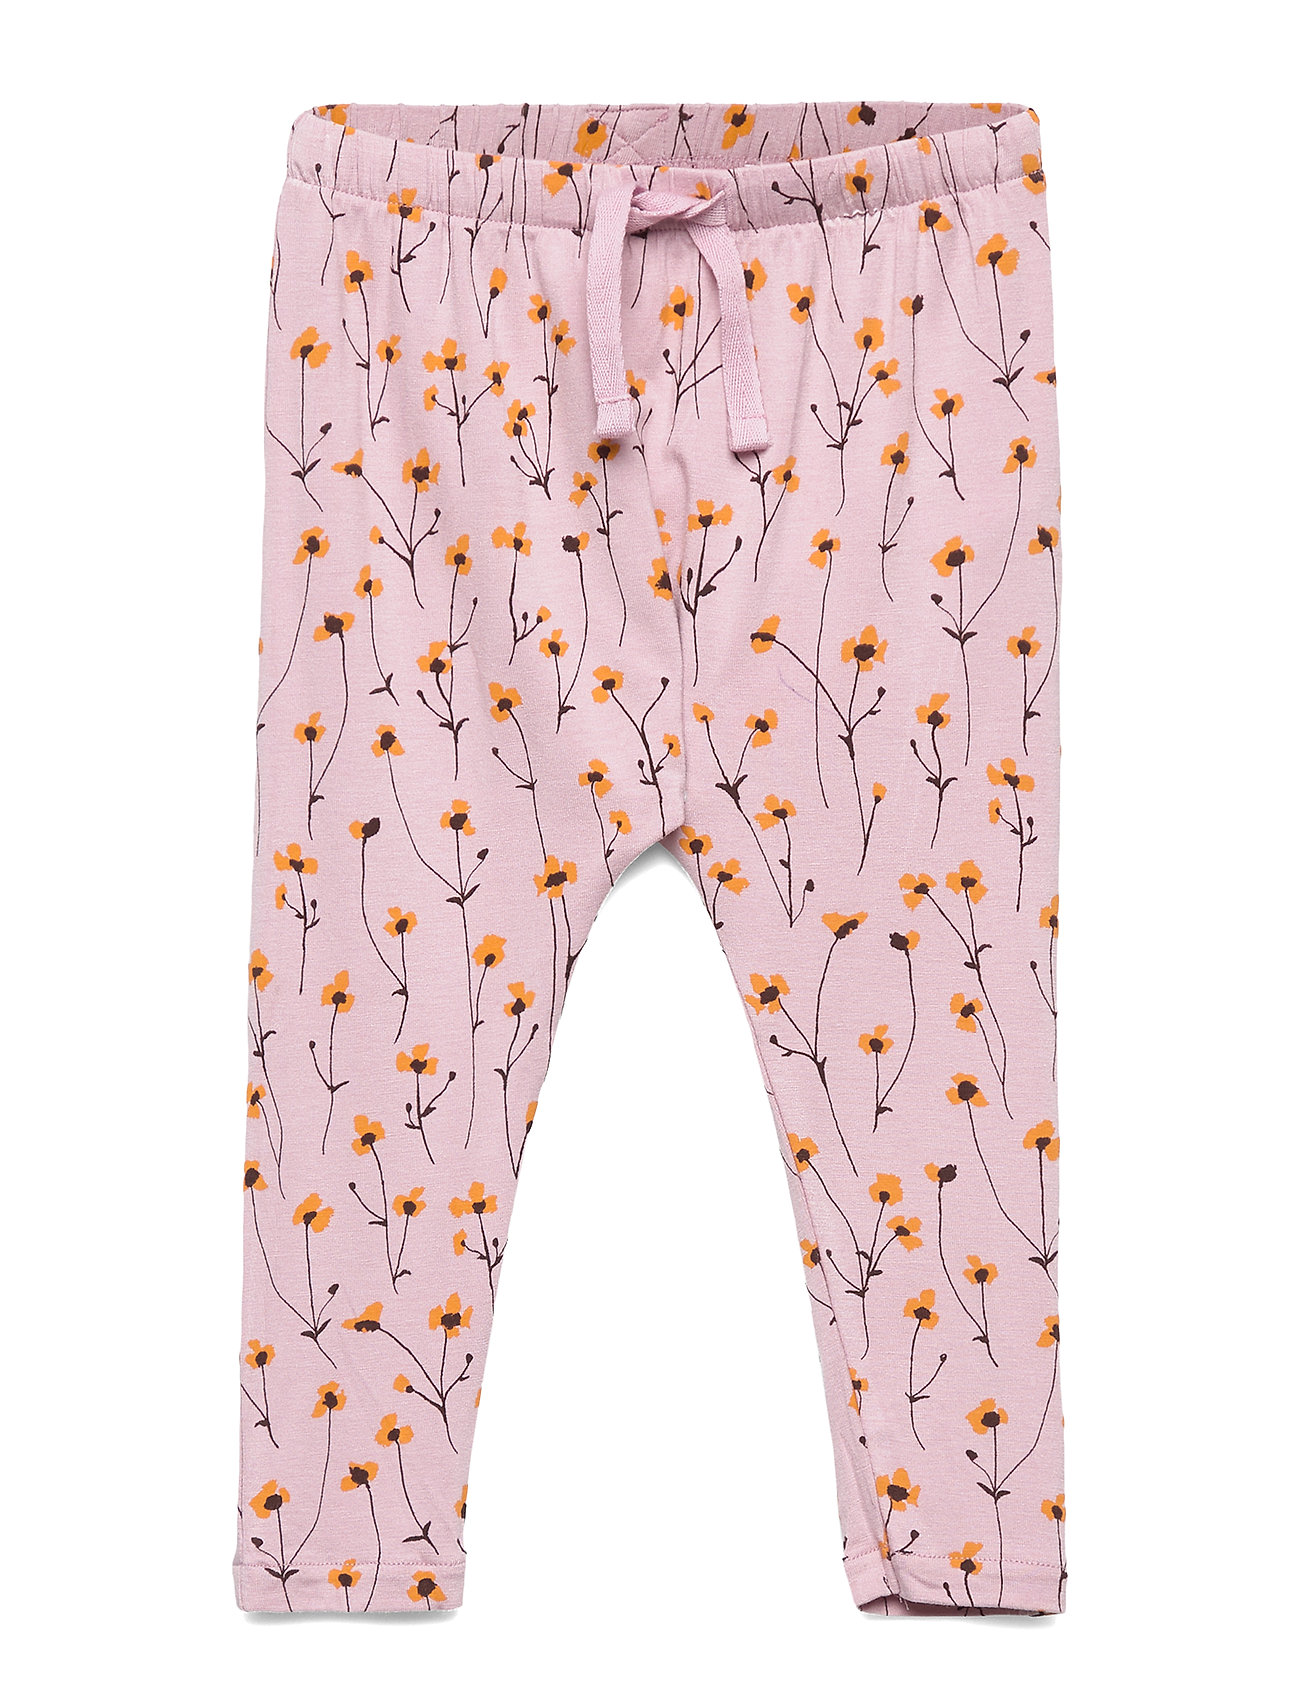 Soft Gallery Faura Pants - DAWN PINK, AOP BUTTERCUP S